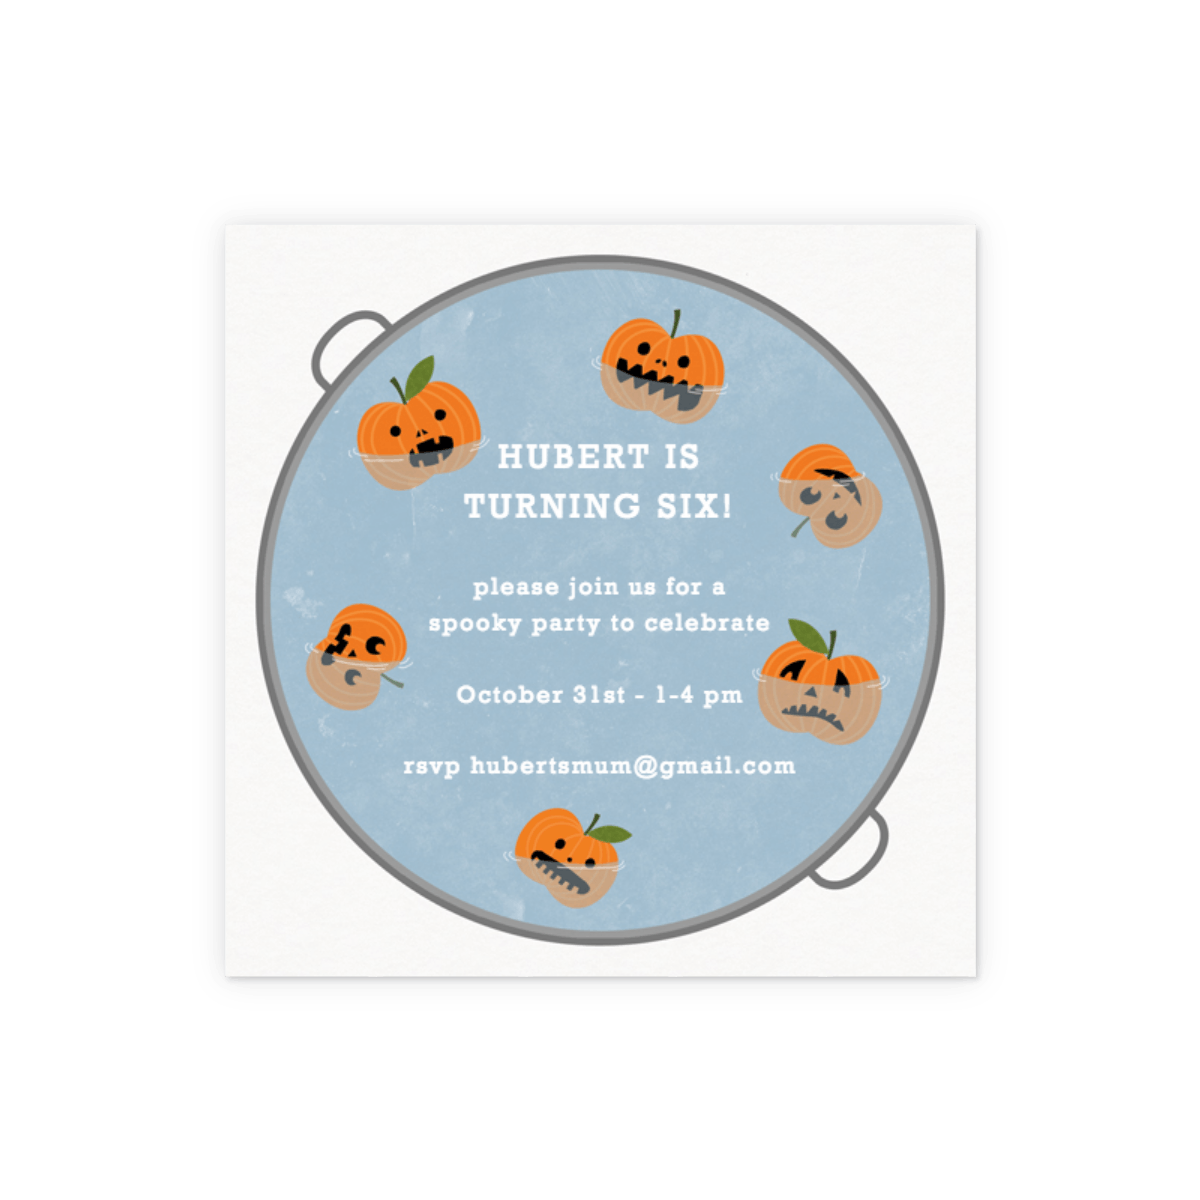 Https%3a%2f%2fwww.papier.com%2fproduct image%2f2093%2f11%2fhalloween apple bobbing 583 front 1542293921.png?ixlib=rb 1.1